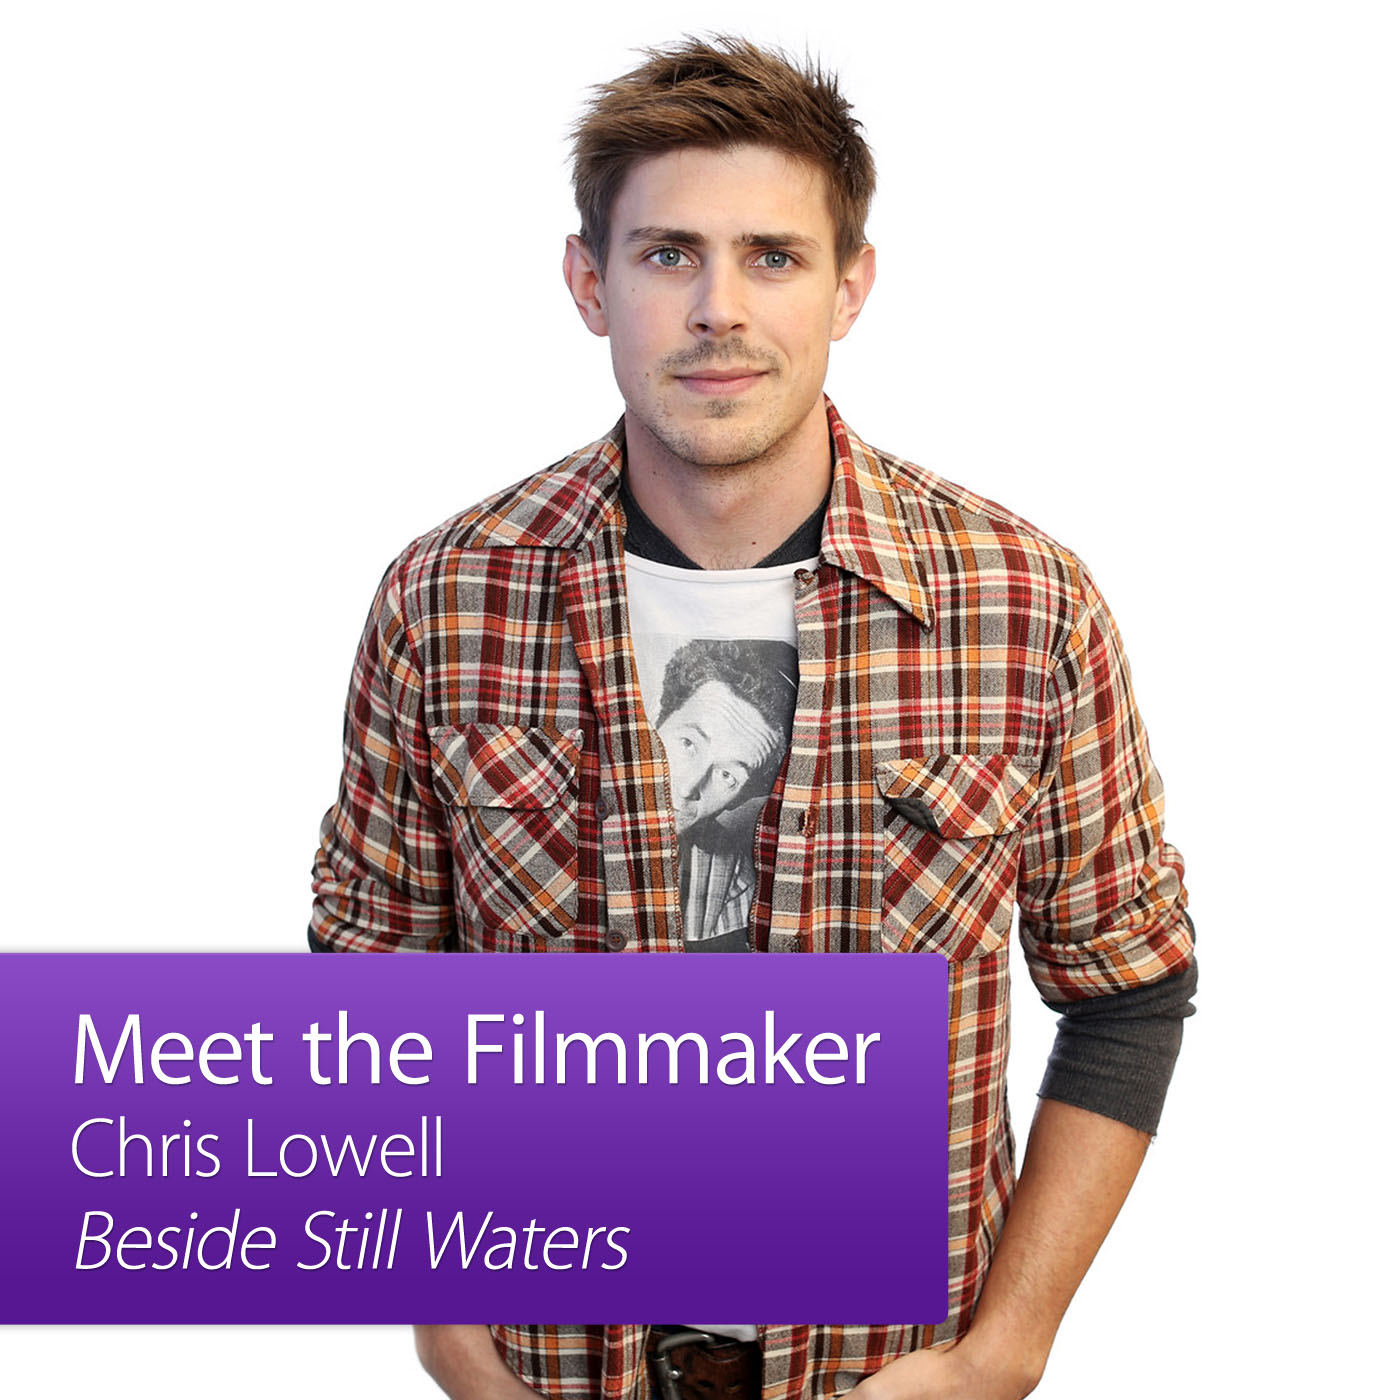 Chris Lowell: Meet the Filmmaker